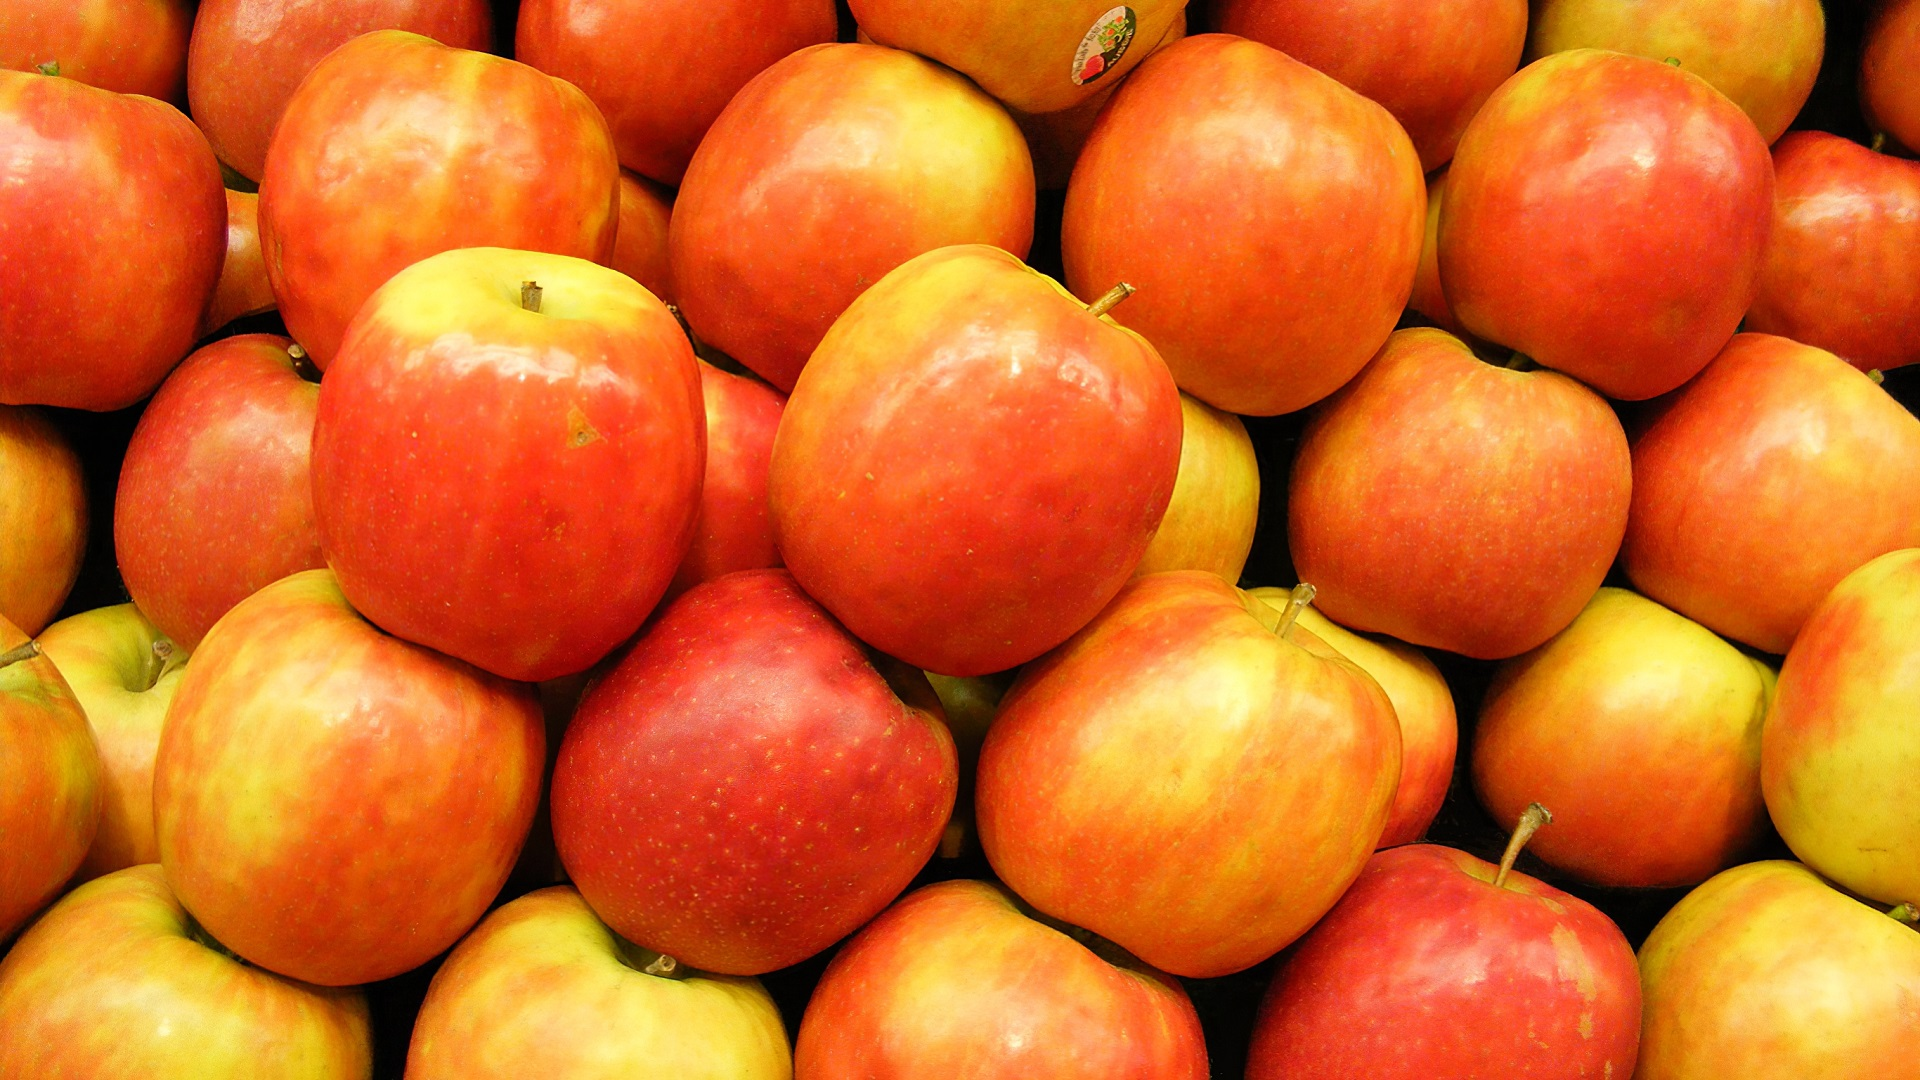 sweet red apples wallpaper and background image | 1366x768 | id:355200